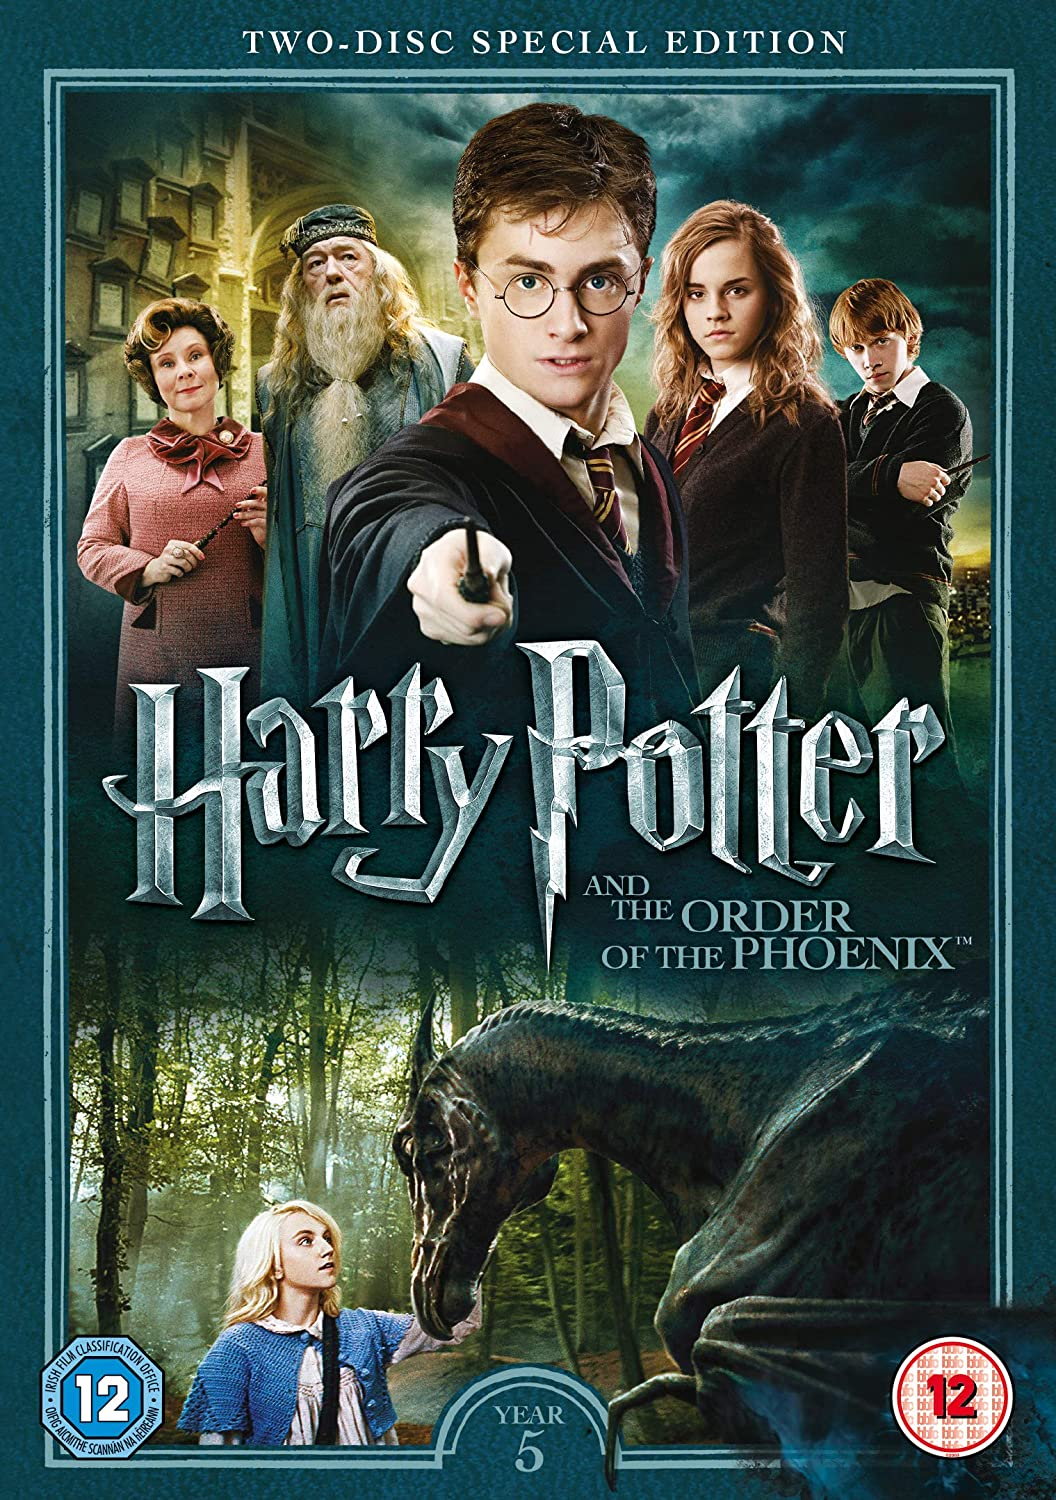 Amazon Com Harry Potter And The Order Of The Phoenix 2016 Edition Includes Digital Download Dvd Movies Tv